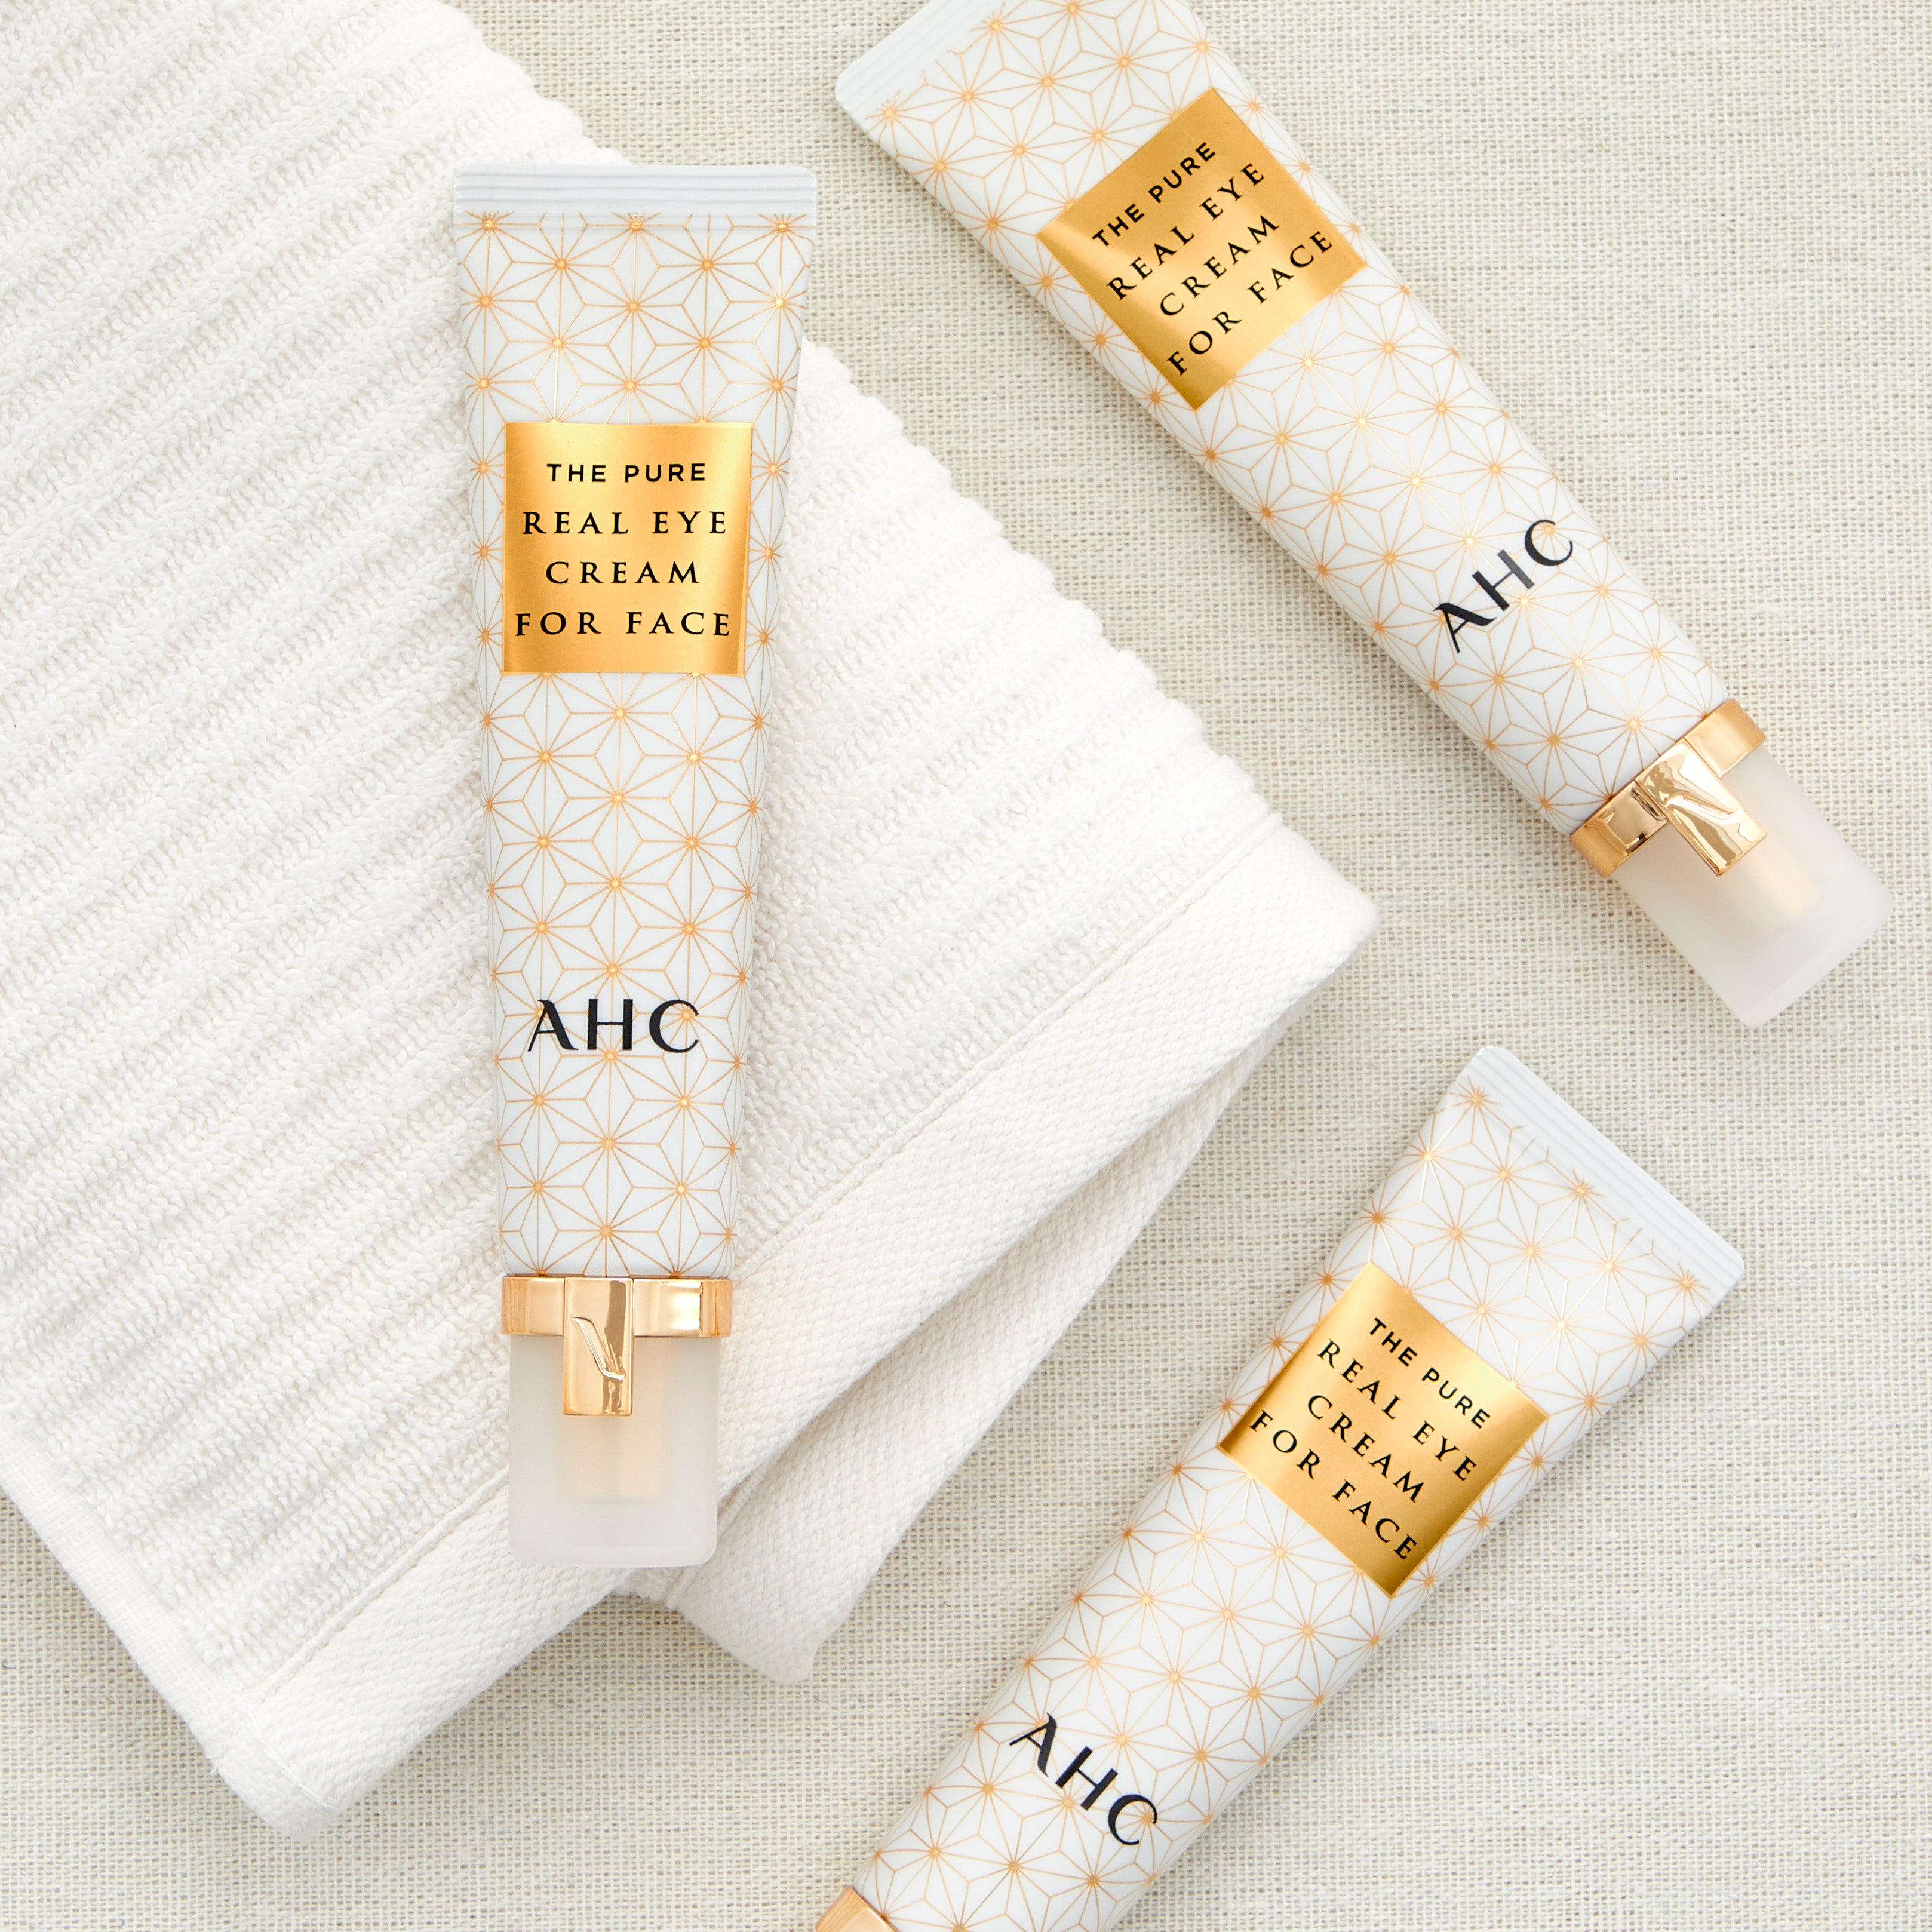 AHC real eye cream for face